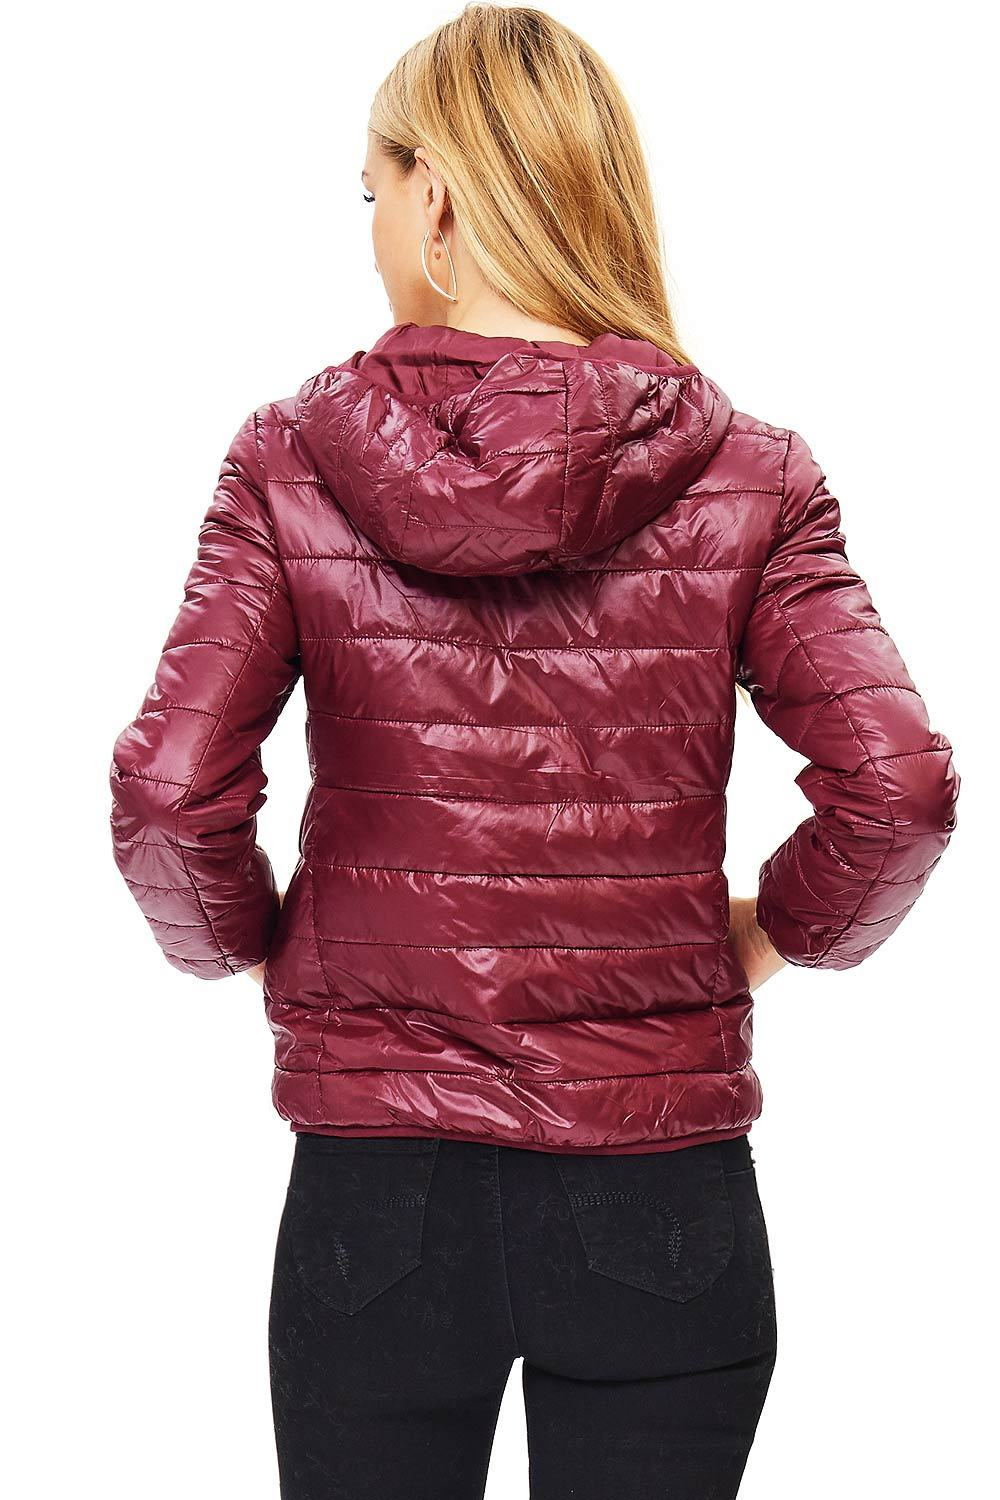 Ambiance Apparel Ambiance Apparel Women S Juniors Quilted Hoodie